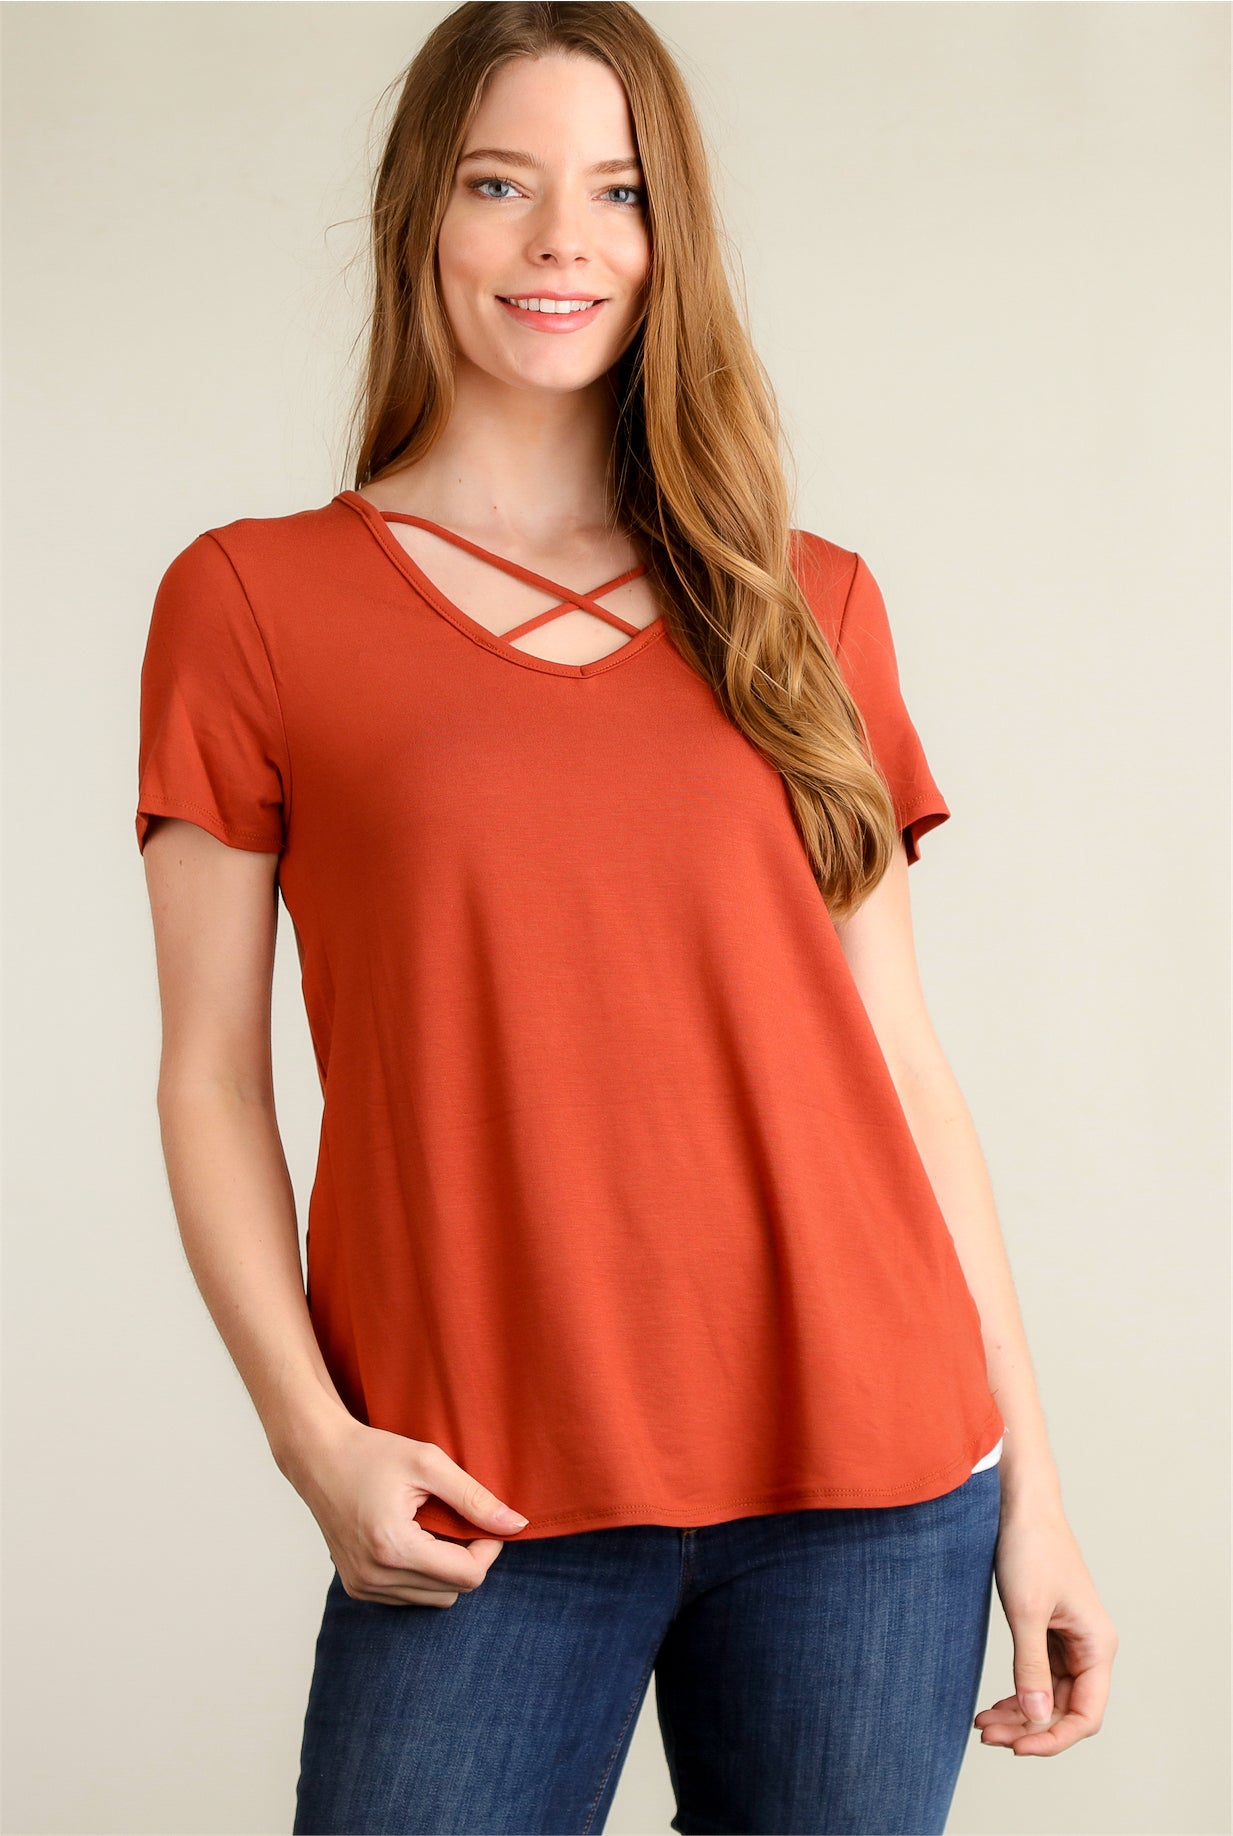 Rust Panel Top (Large Sizes)